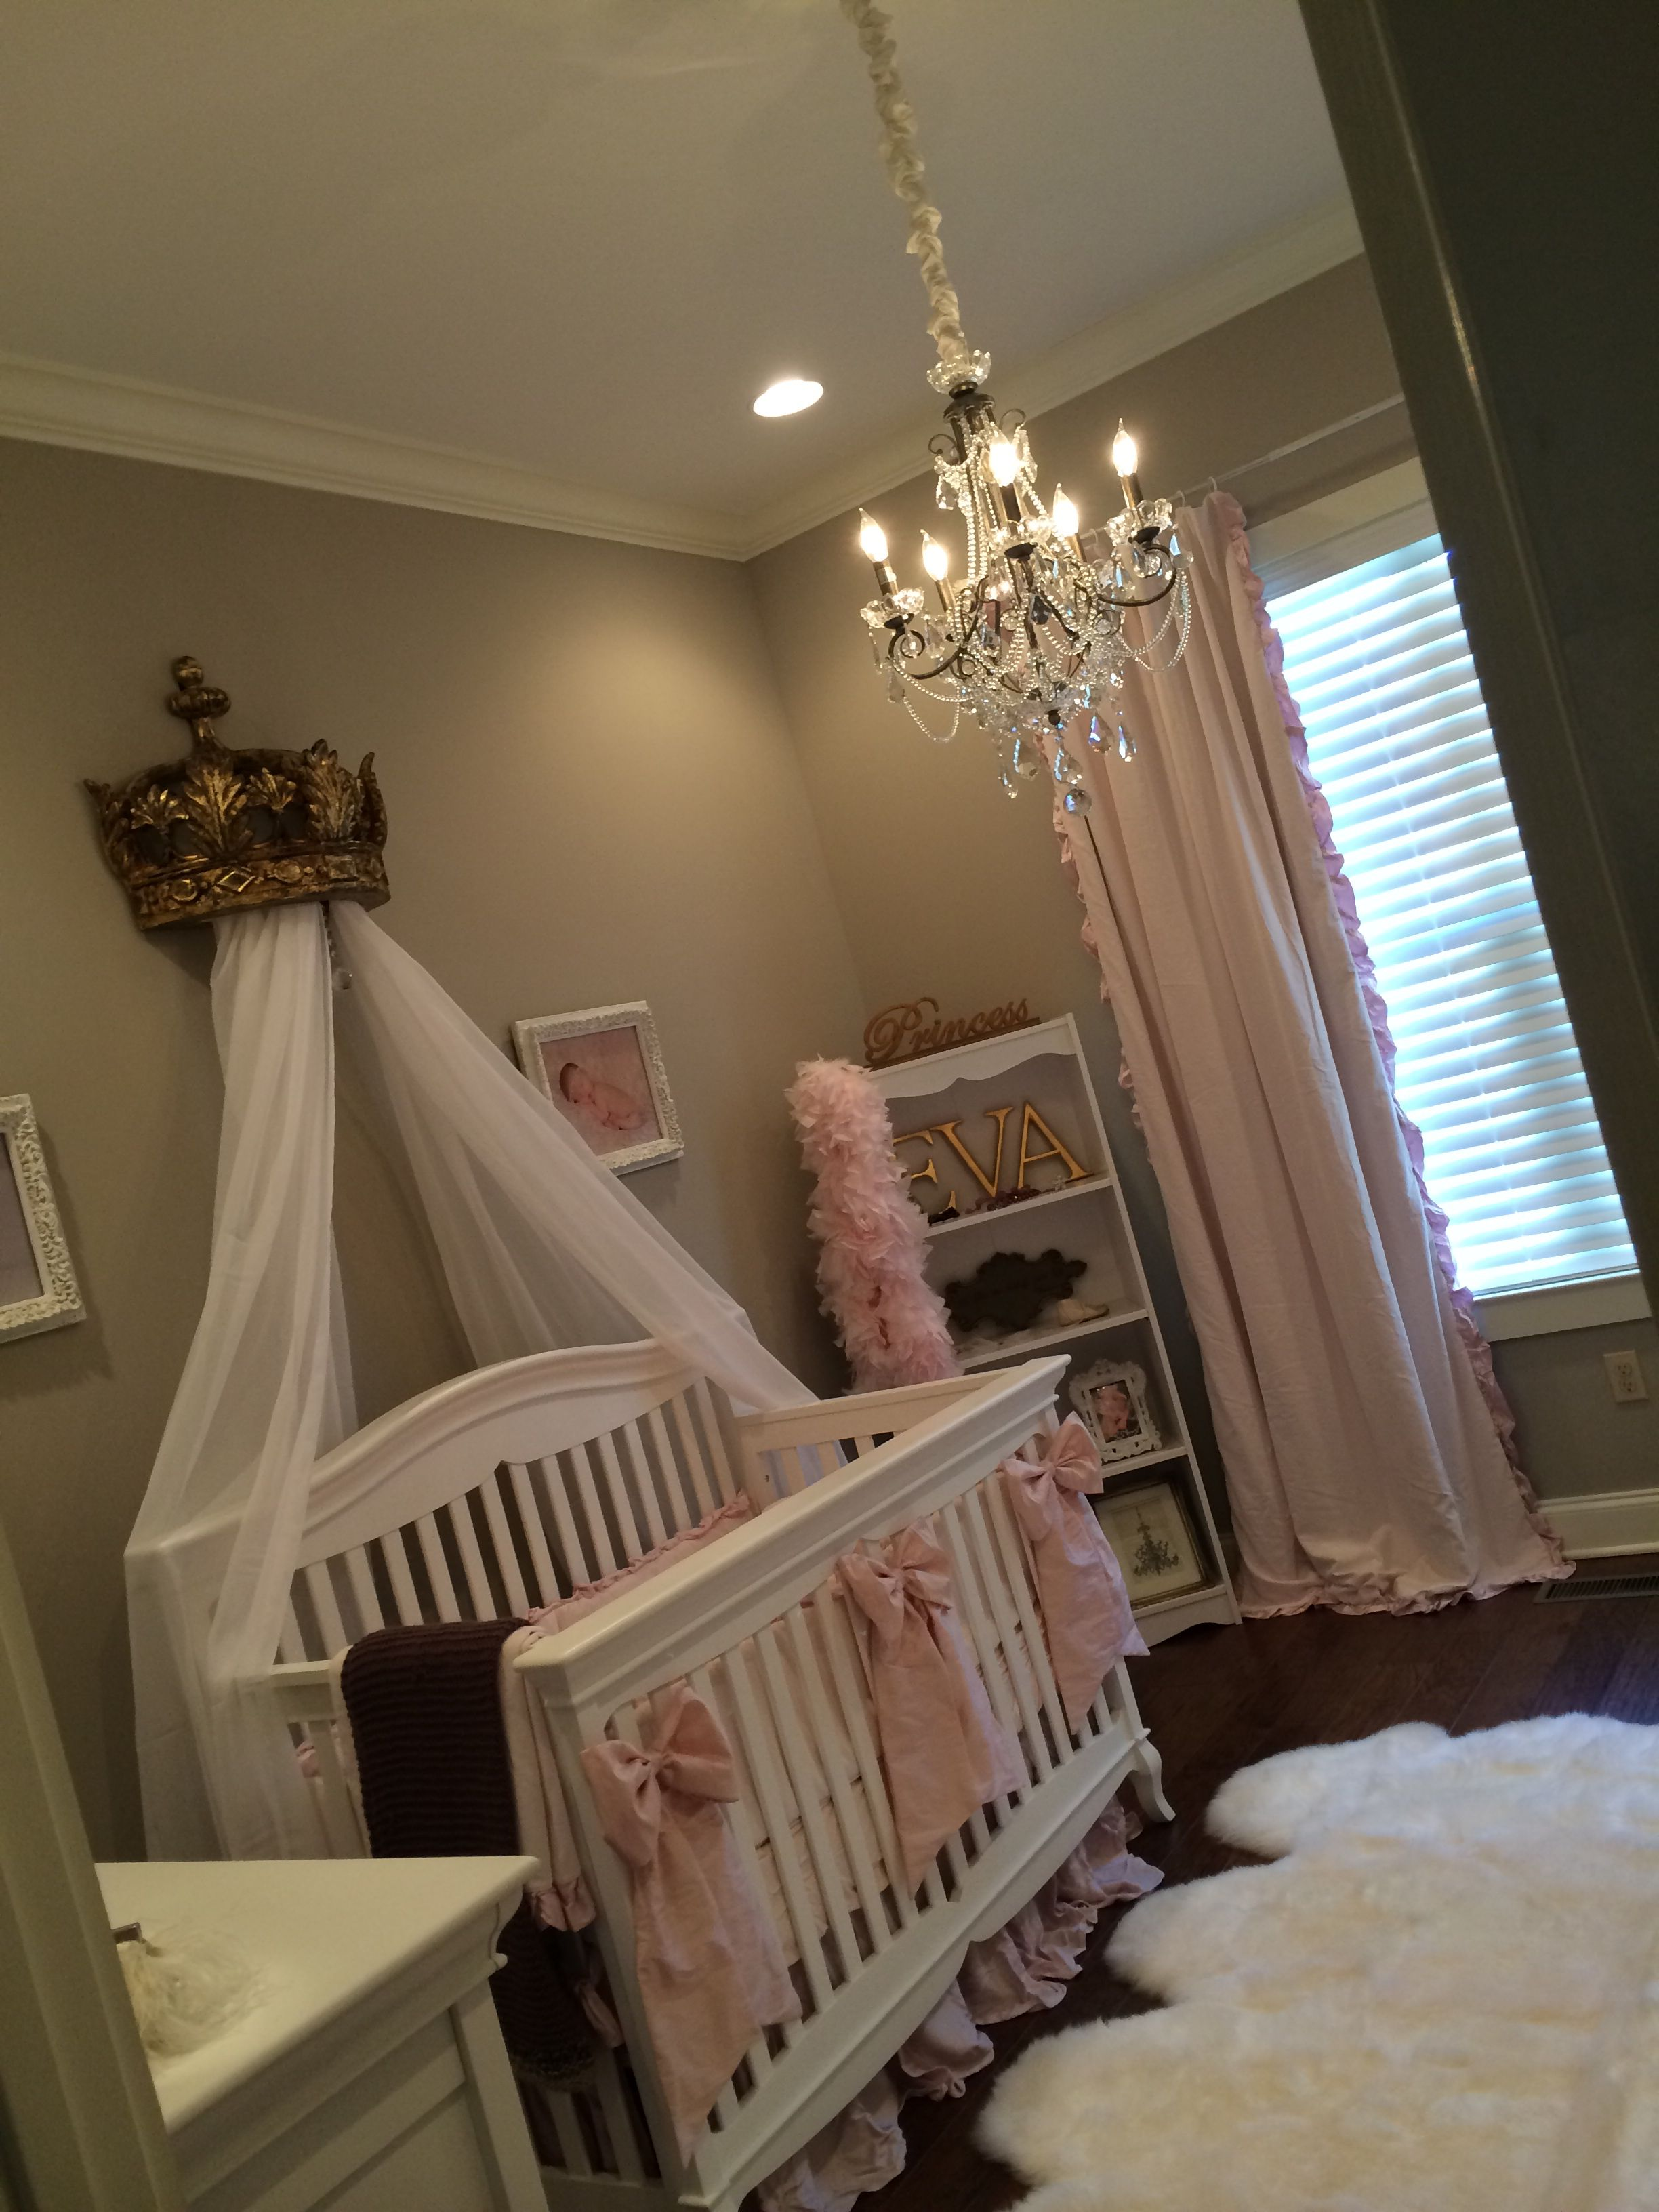 Eva's elegant nursery with a sheepskin rug, Restoration Hardware linens and drapery, and 3 crib dupioni silk bows from Caty's Cribs on Etsy. Baby girl nursery.